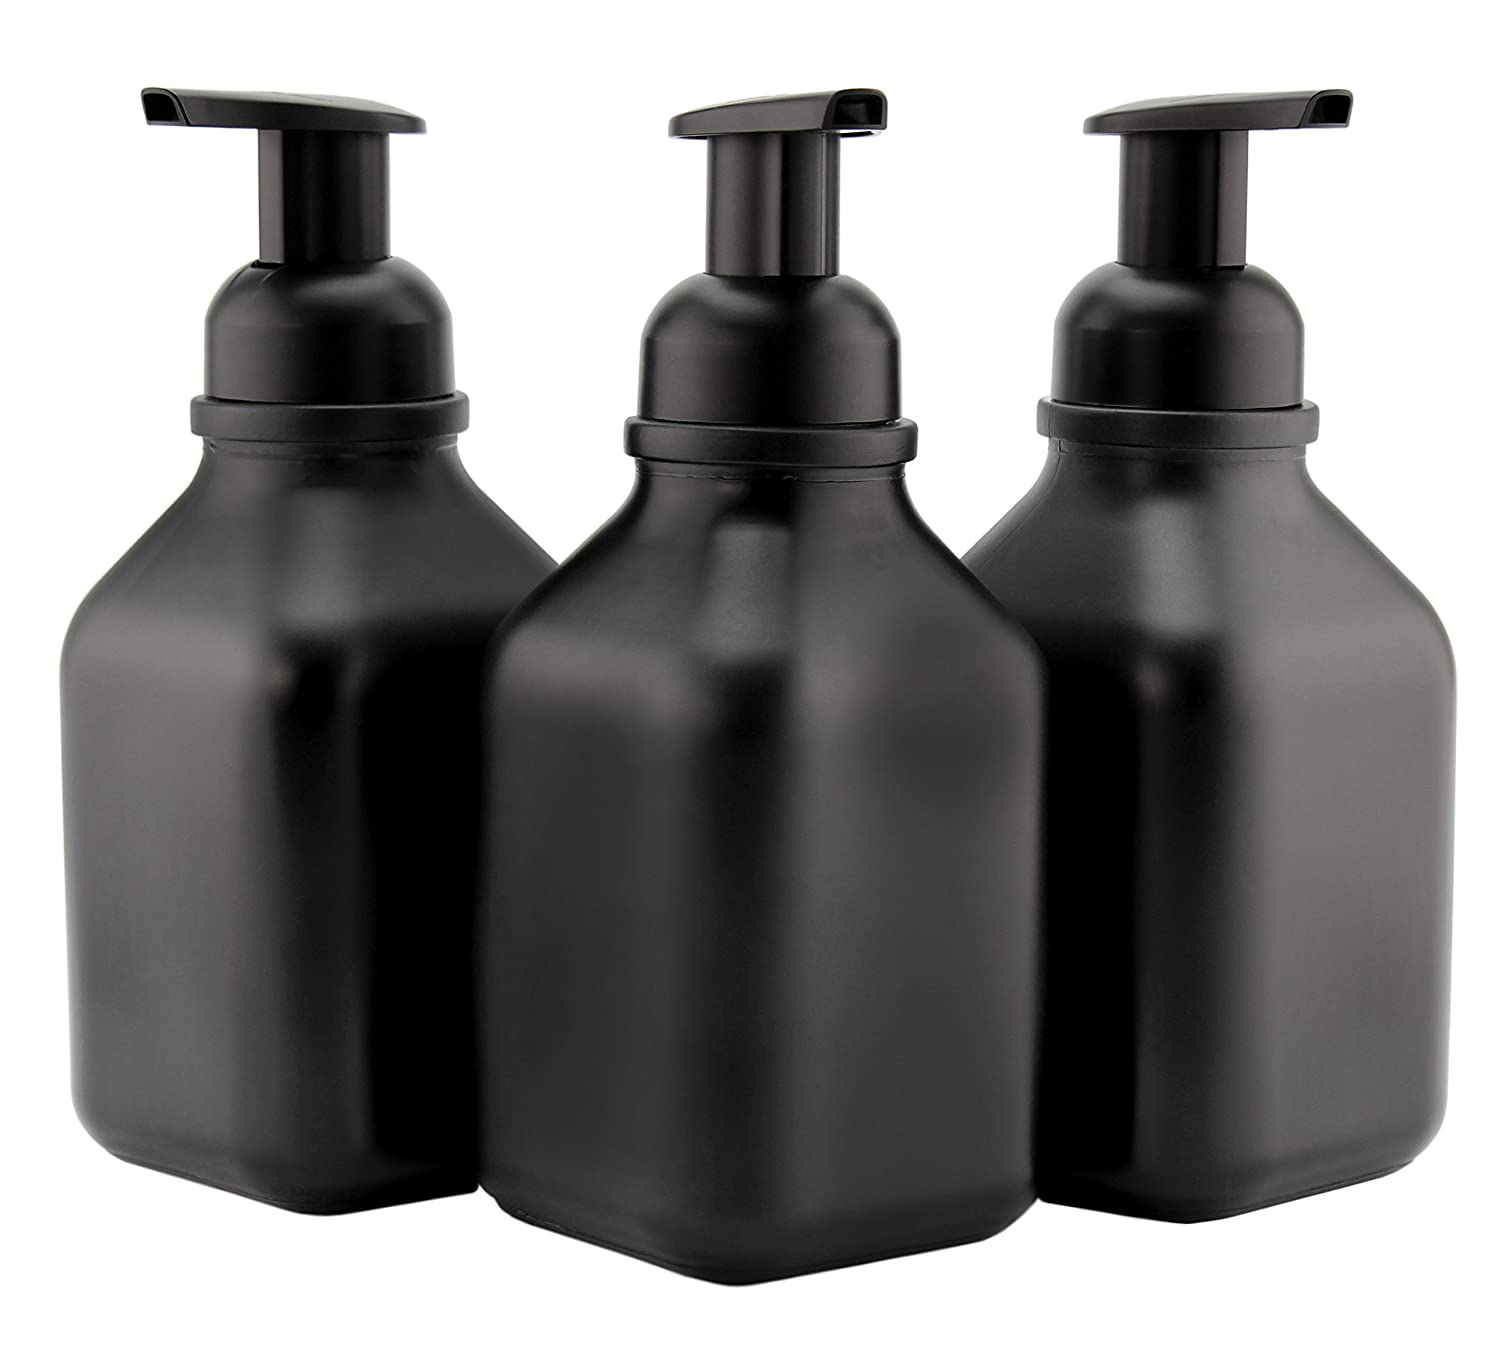 Cornucopia Brands Square Foaming Soap Dispensers (3-Pack, Black-Coated Bottle w/Black Pump), 16-Ounce Capacity